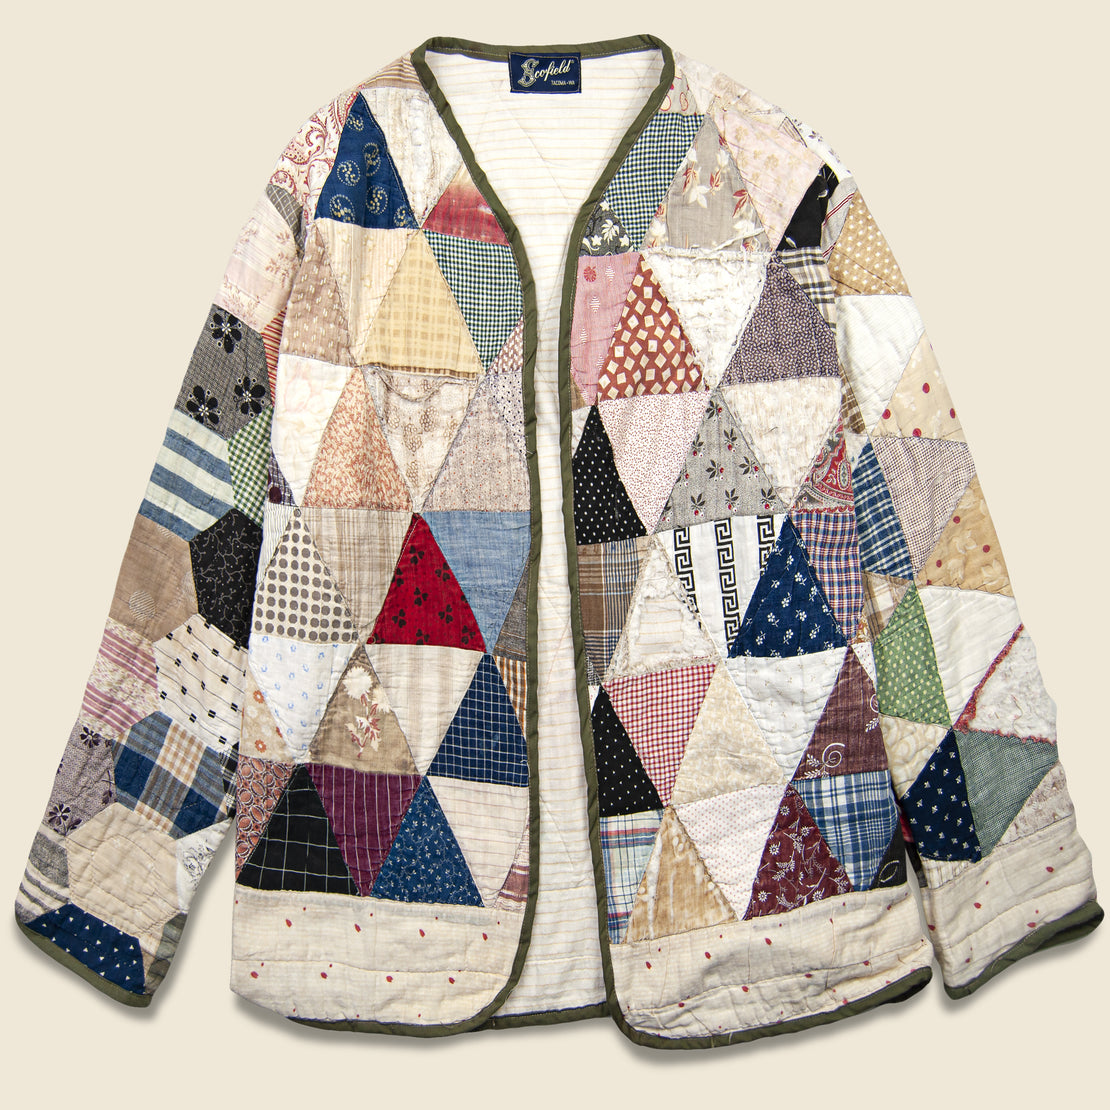 Vintage Triangles & Striped Lining Quilt Kimono - Multi